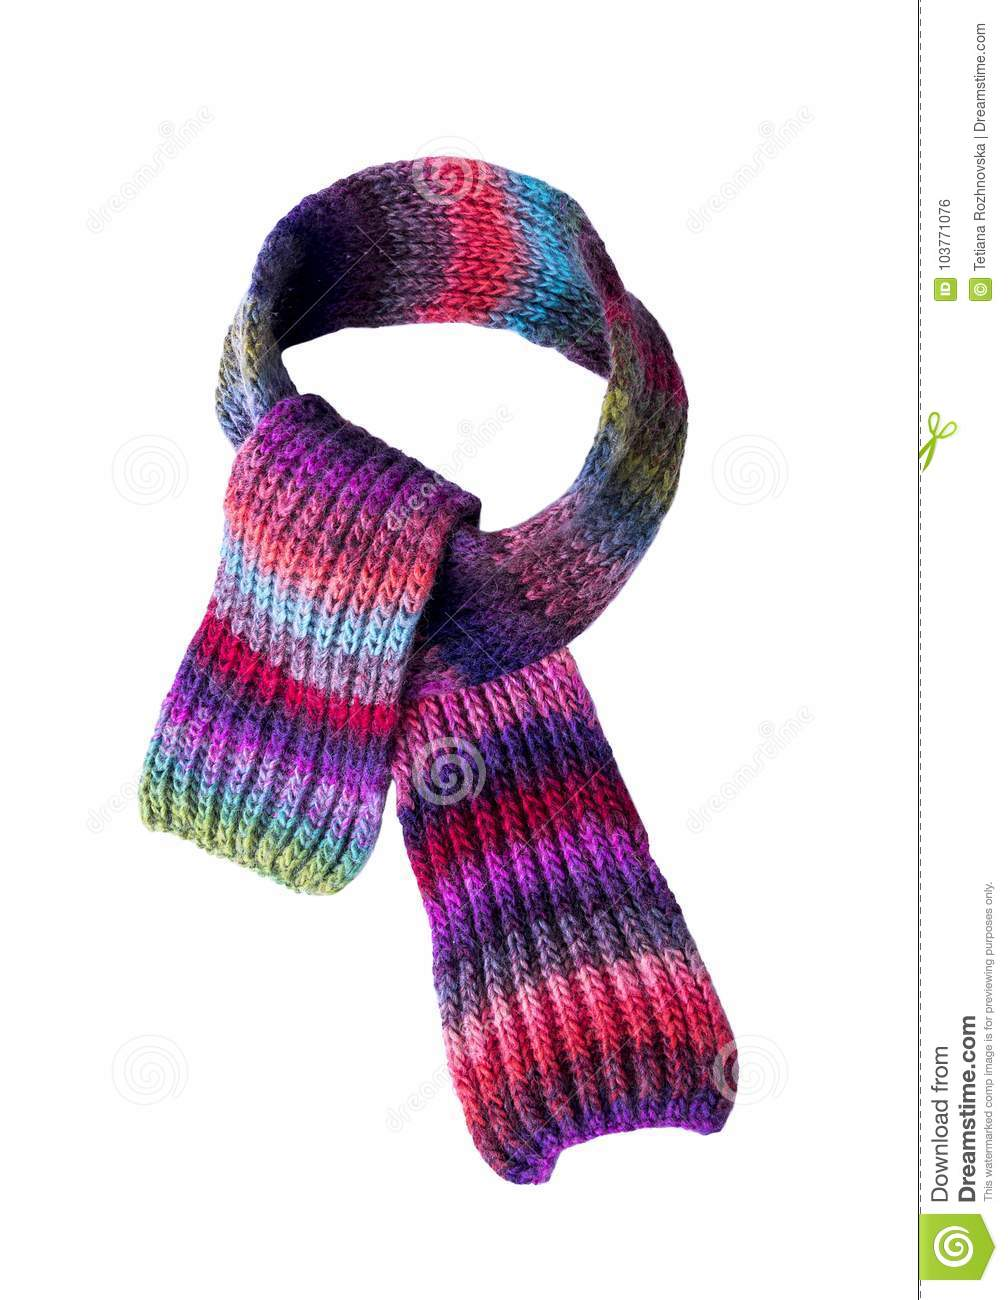 8e270646c Multi-colored Winter Scarf. Stock Photo - Image of color, elegance ...